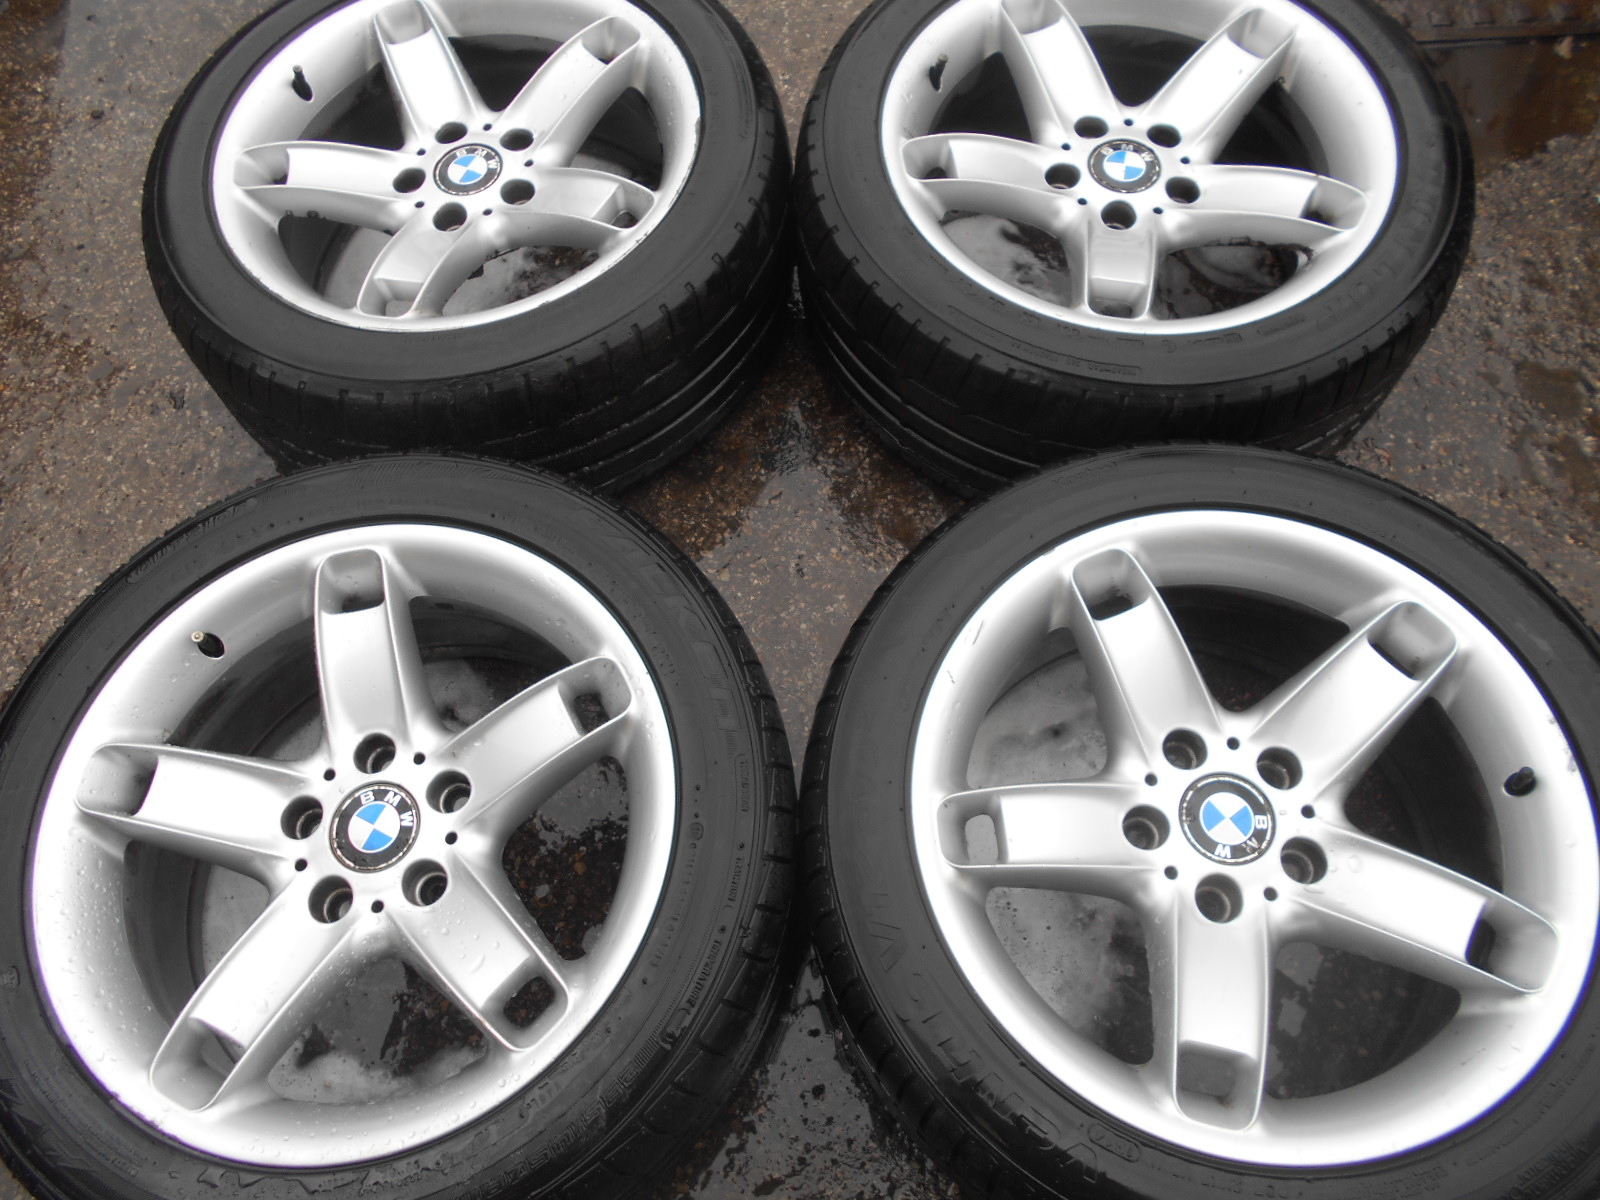 wheels attached and images forums showthread attachment tires styles rim bmw snow style